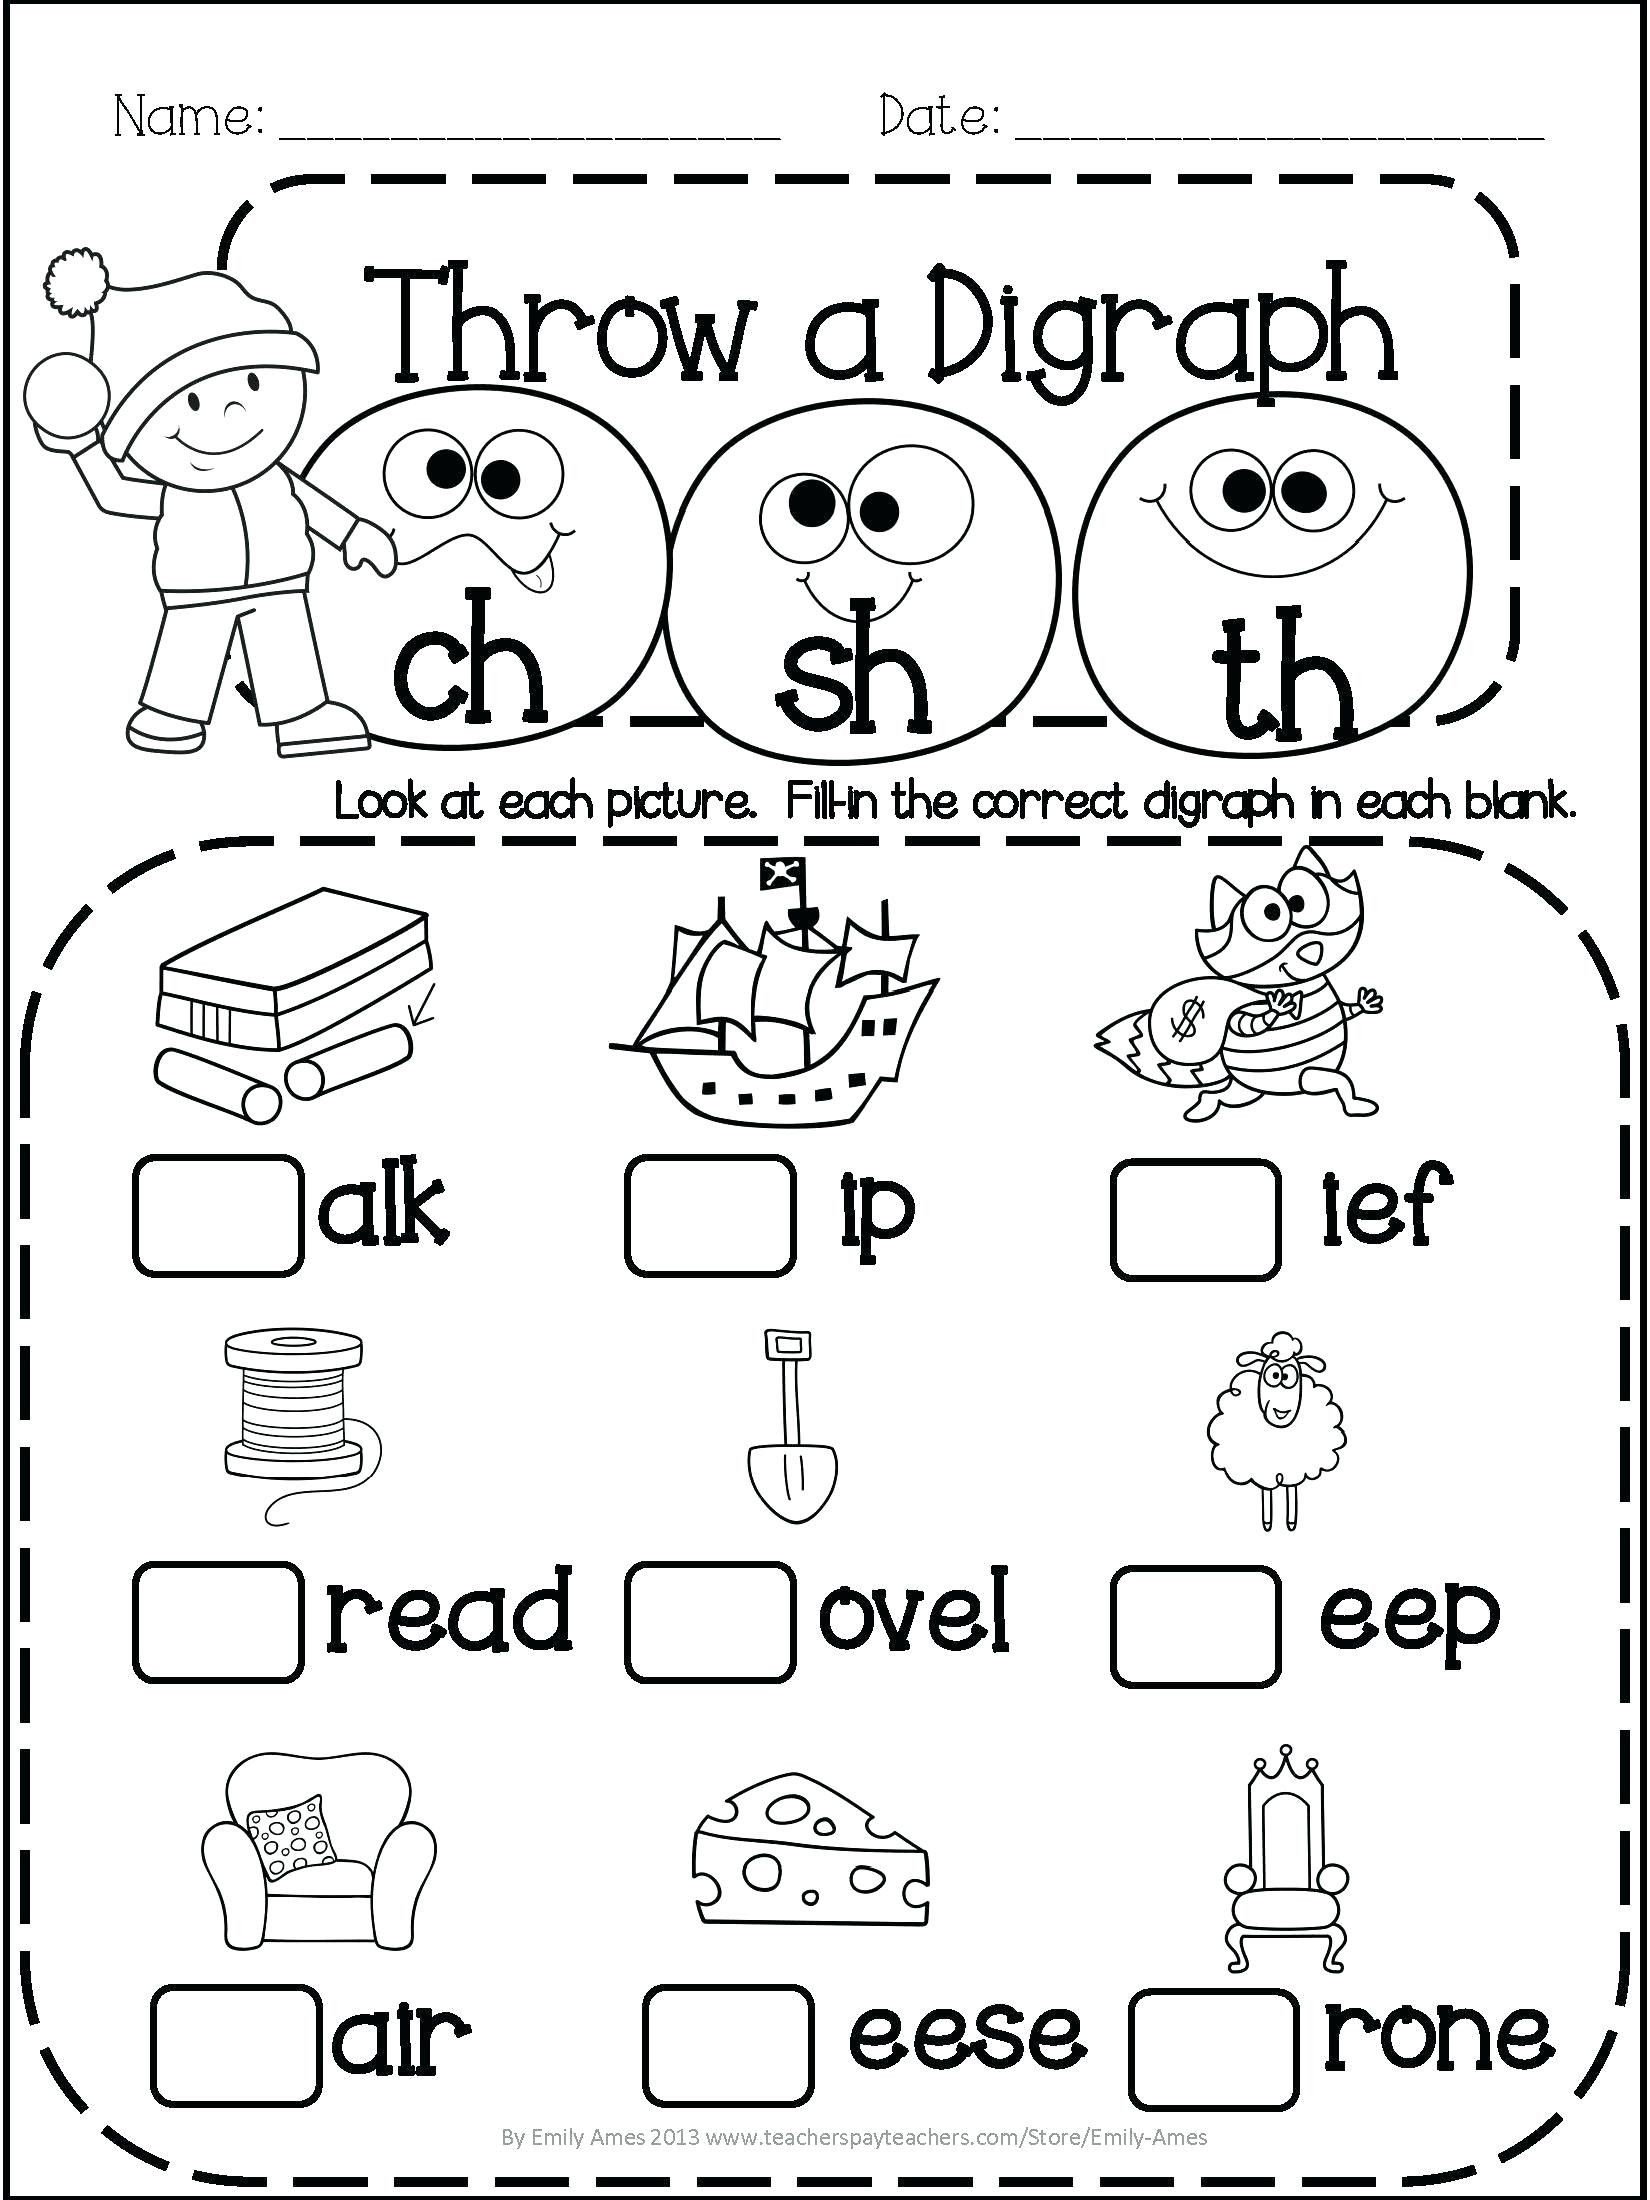 4 Free Math Worksheets Third Grade 3 Addition Word